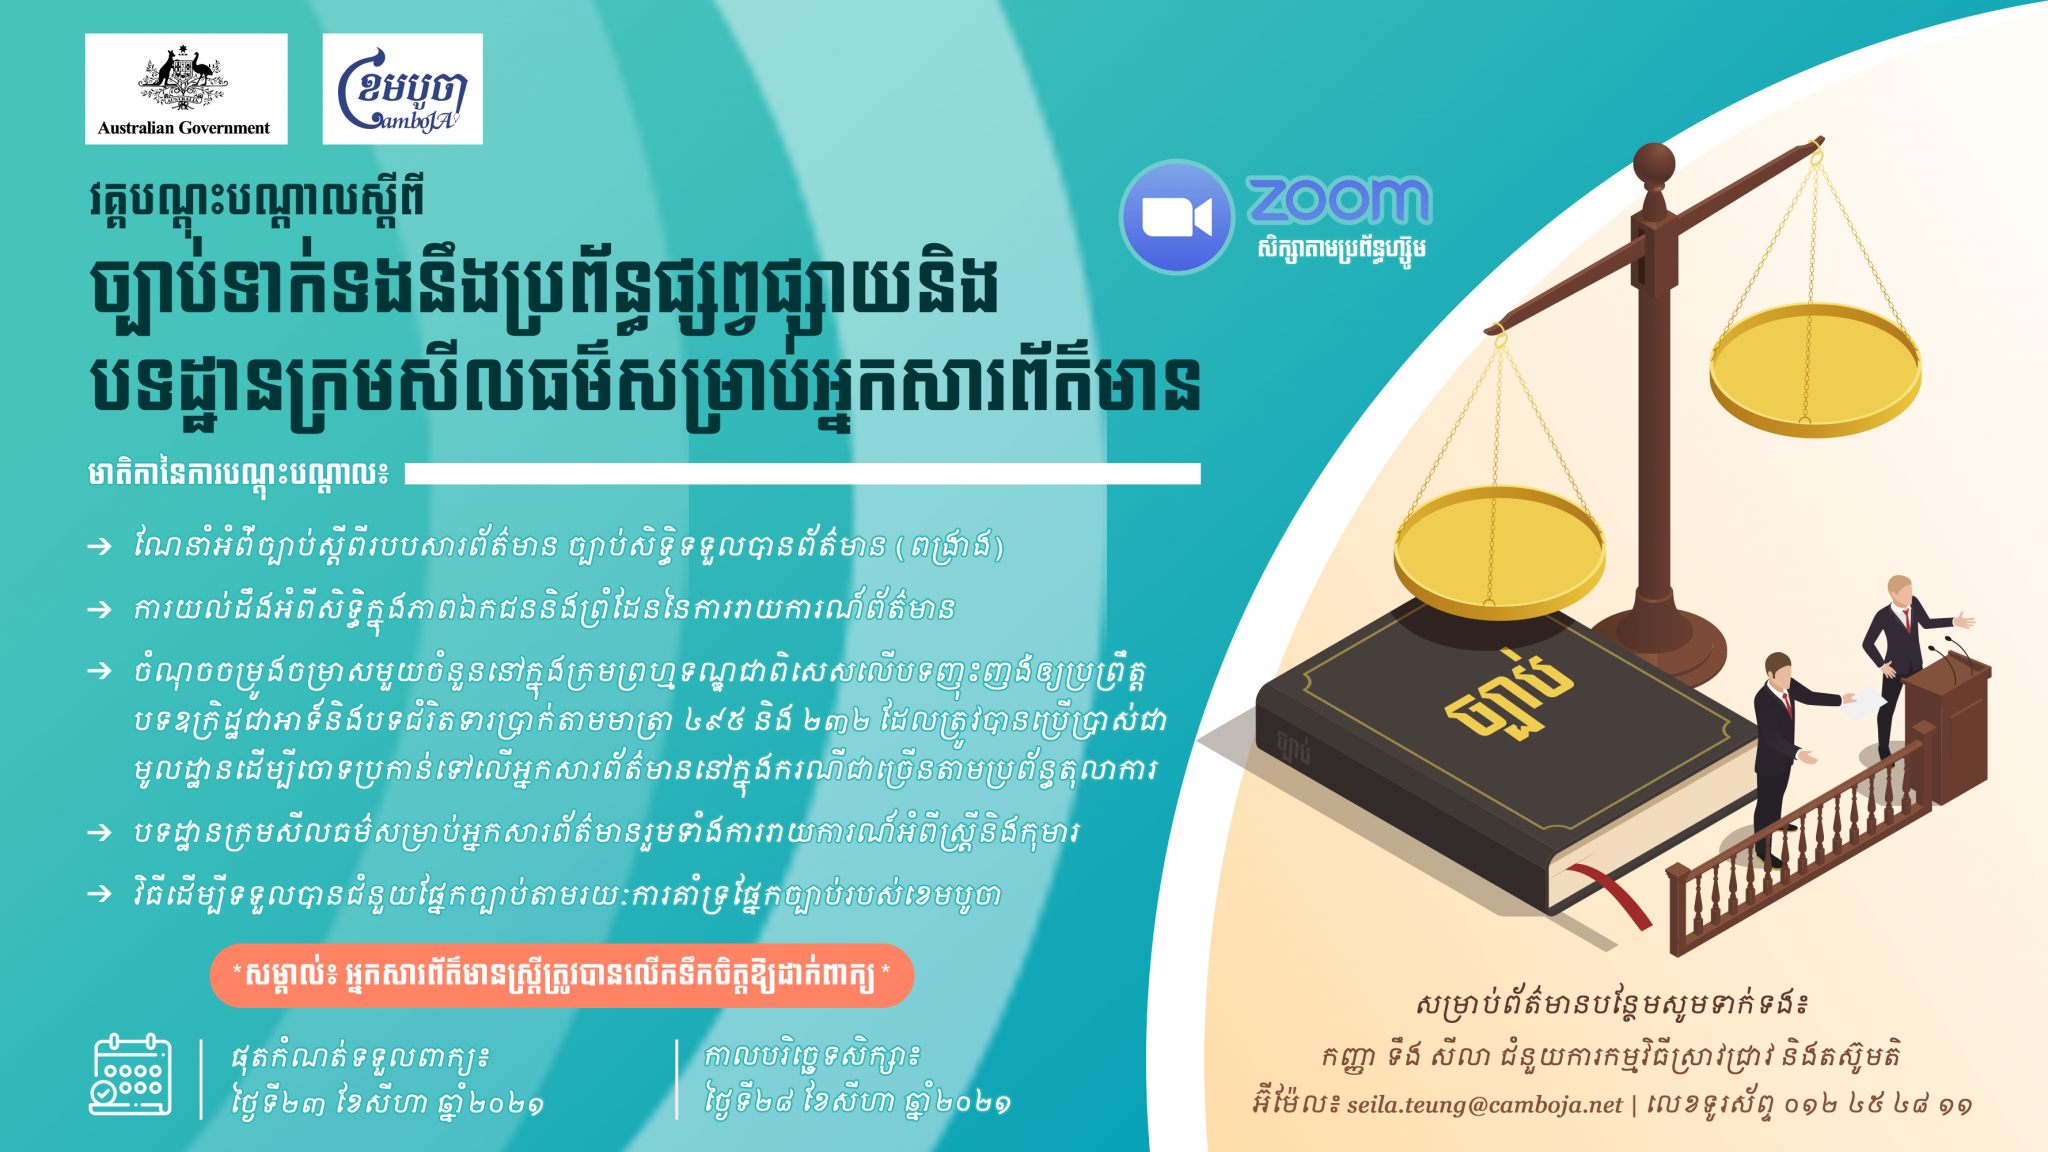 Media-related Laws and Ethical Standards for Journalists